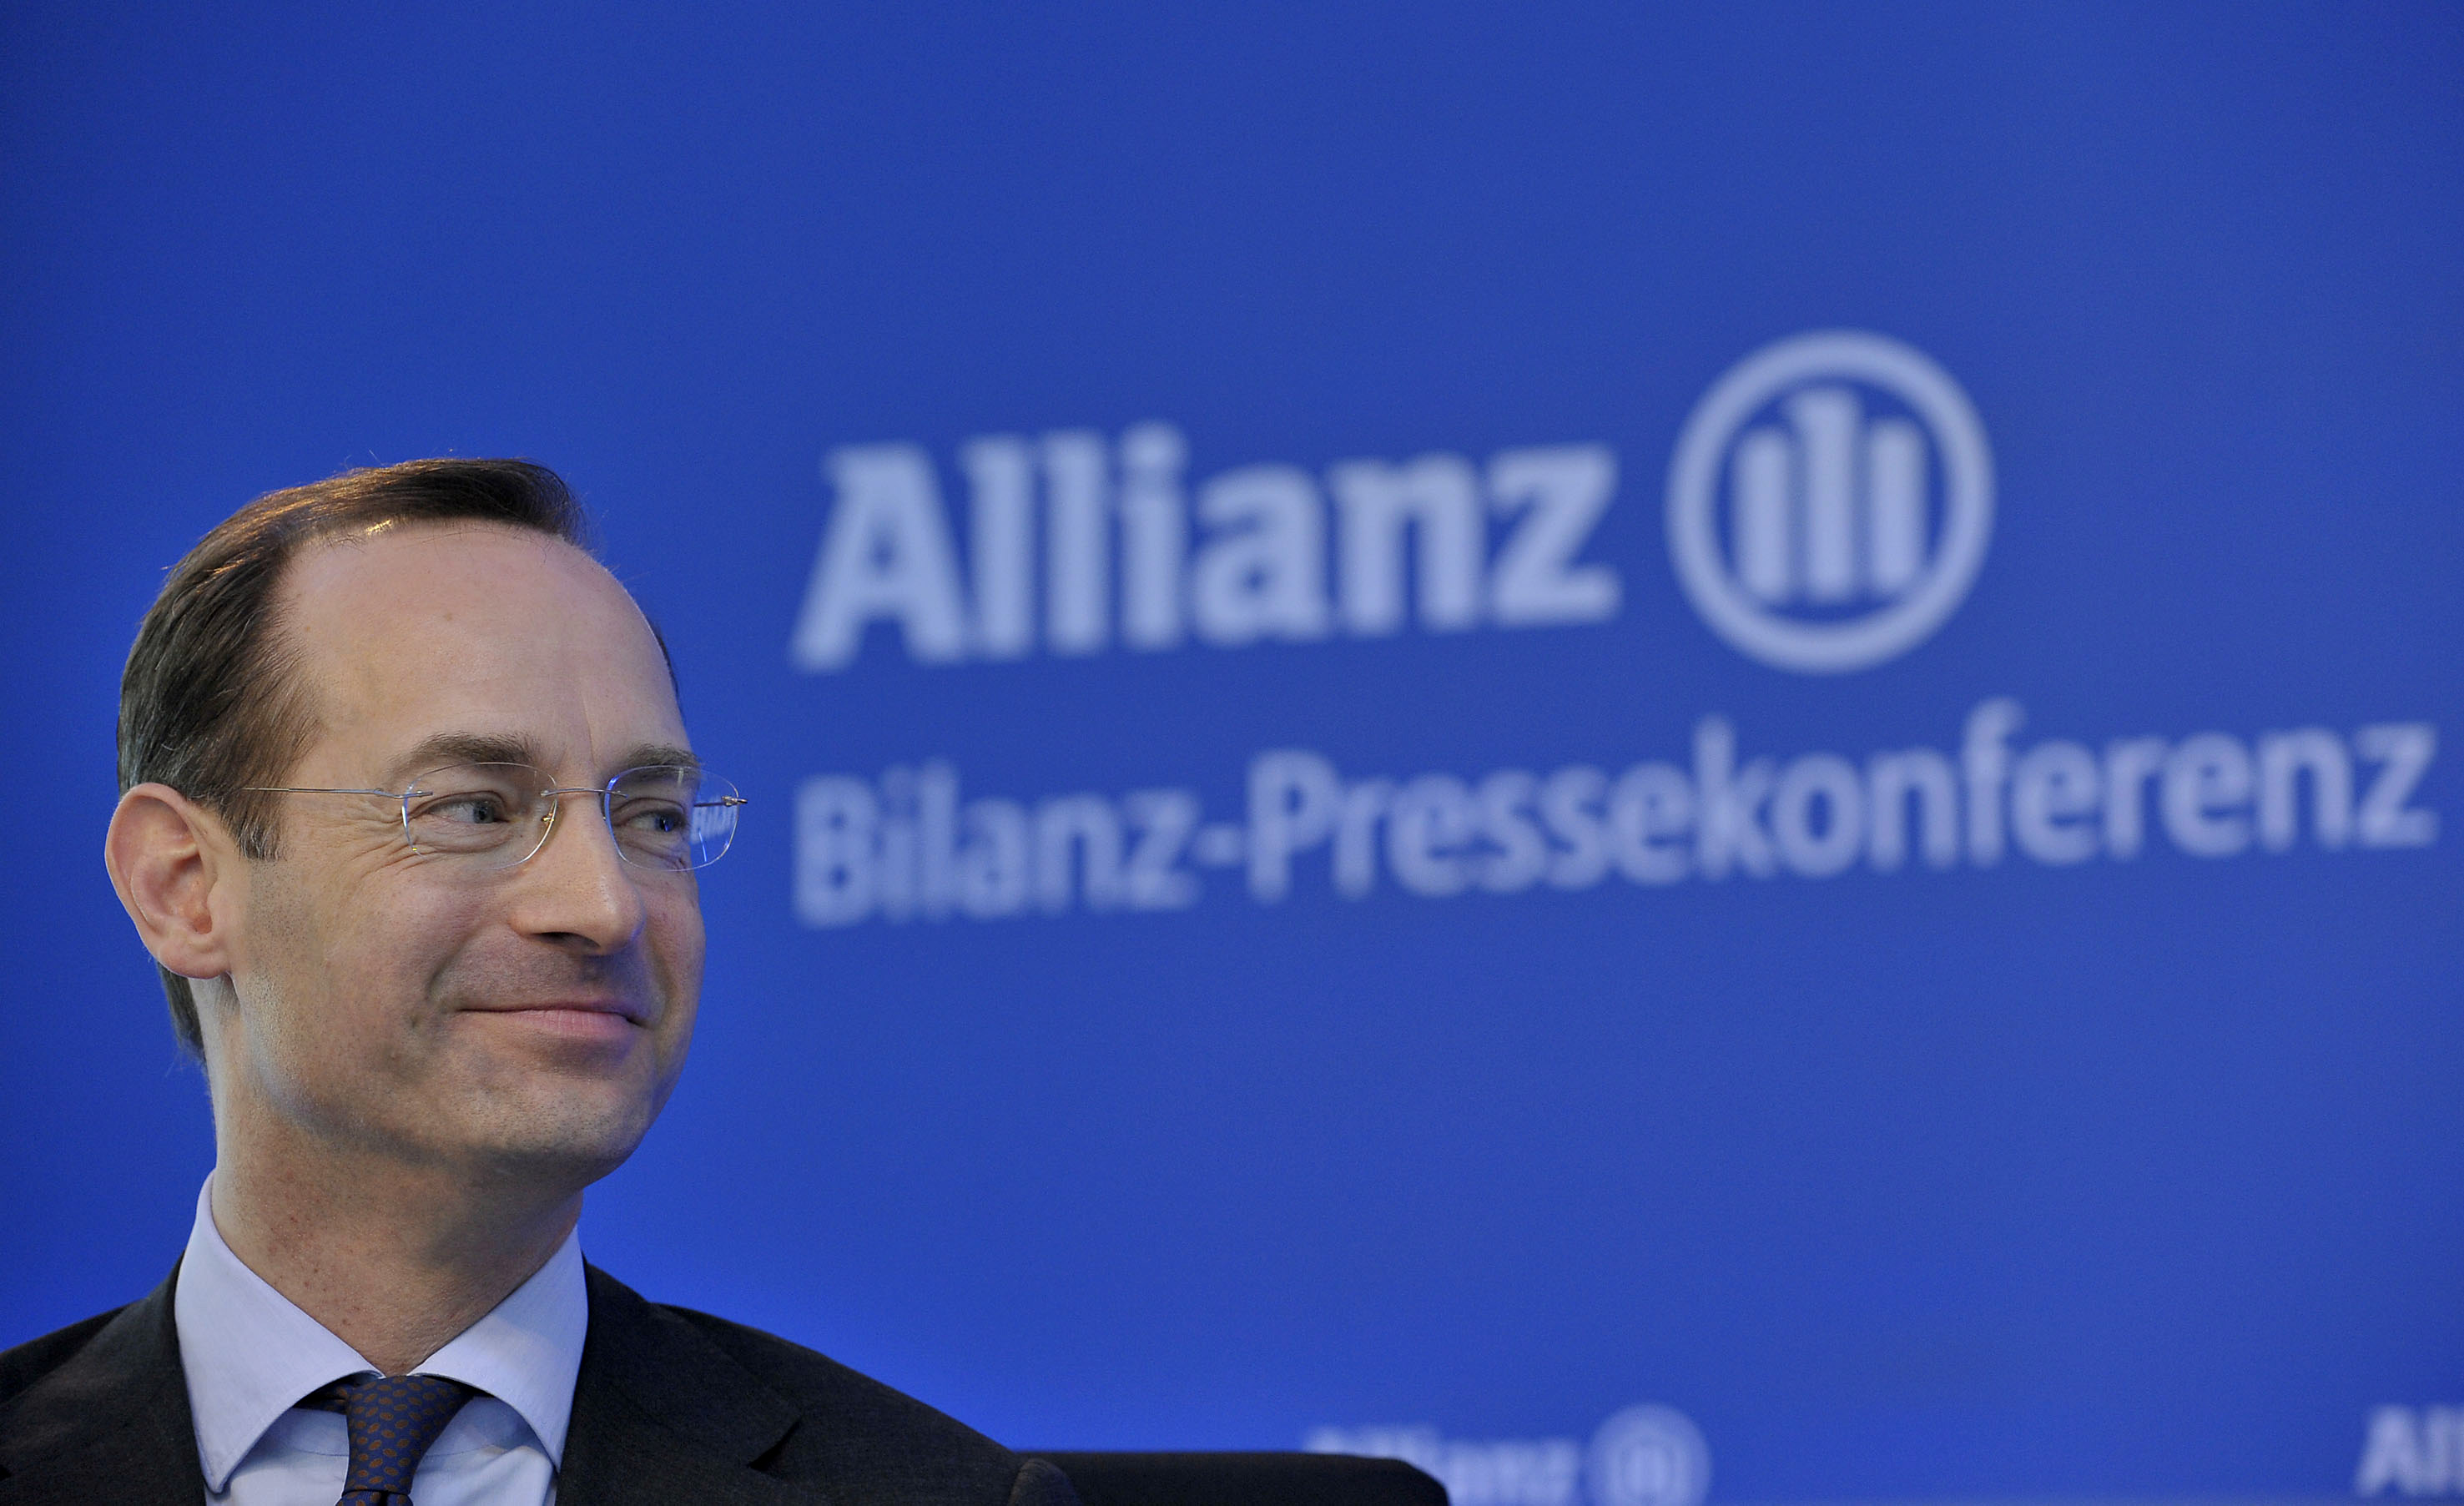 Allianz FY Press Conference